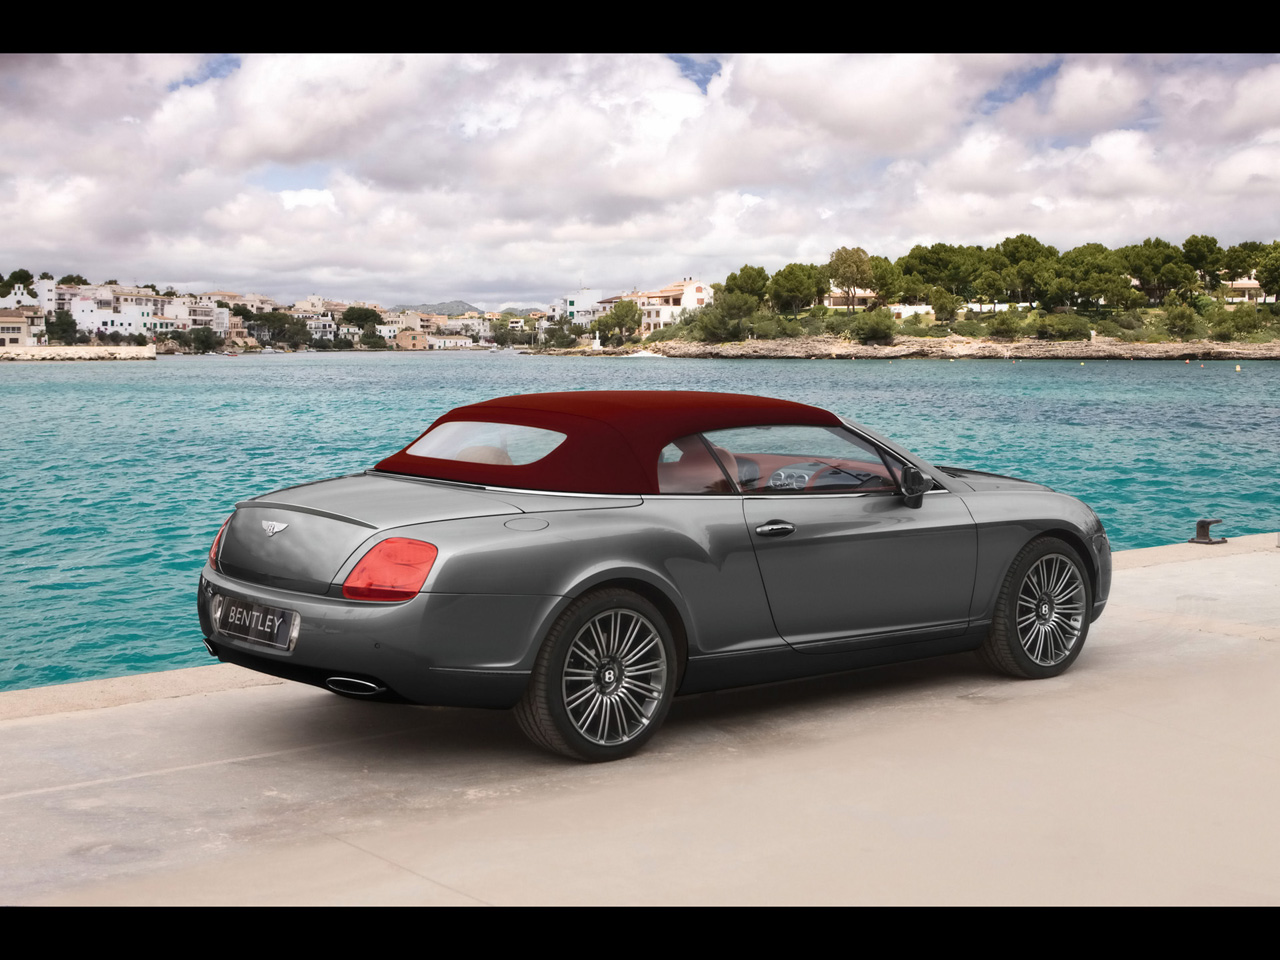 2009 Bentley Continental Gt Speed #15